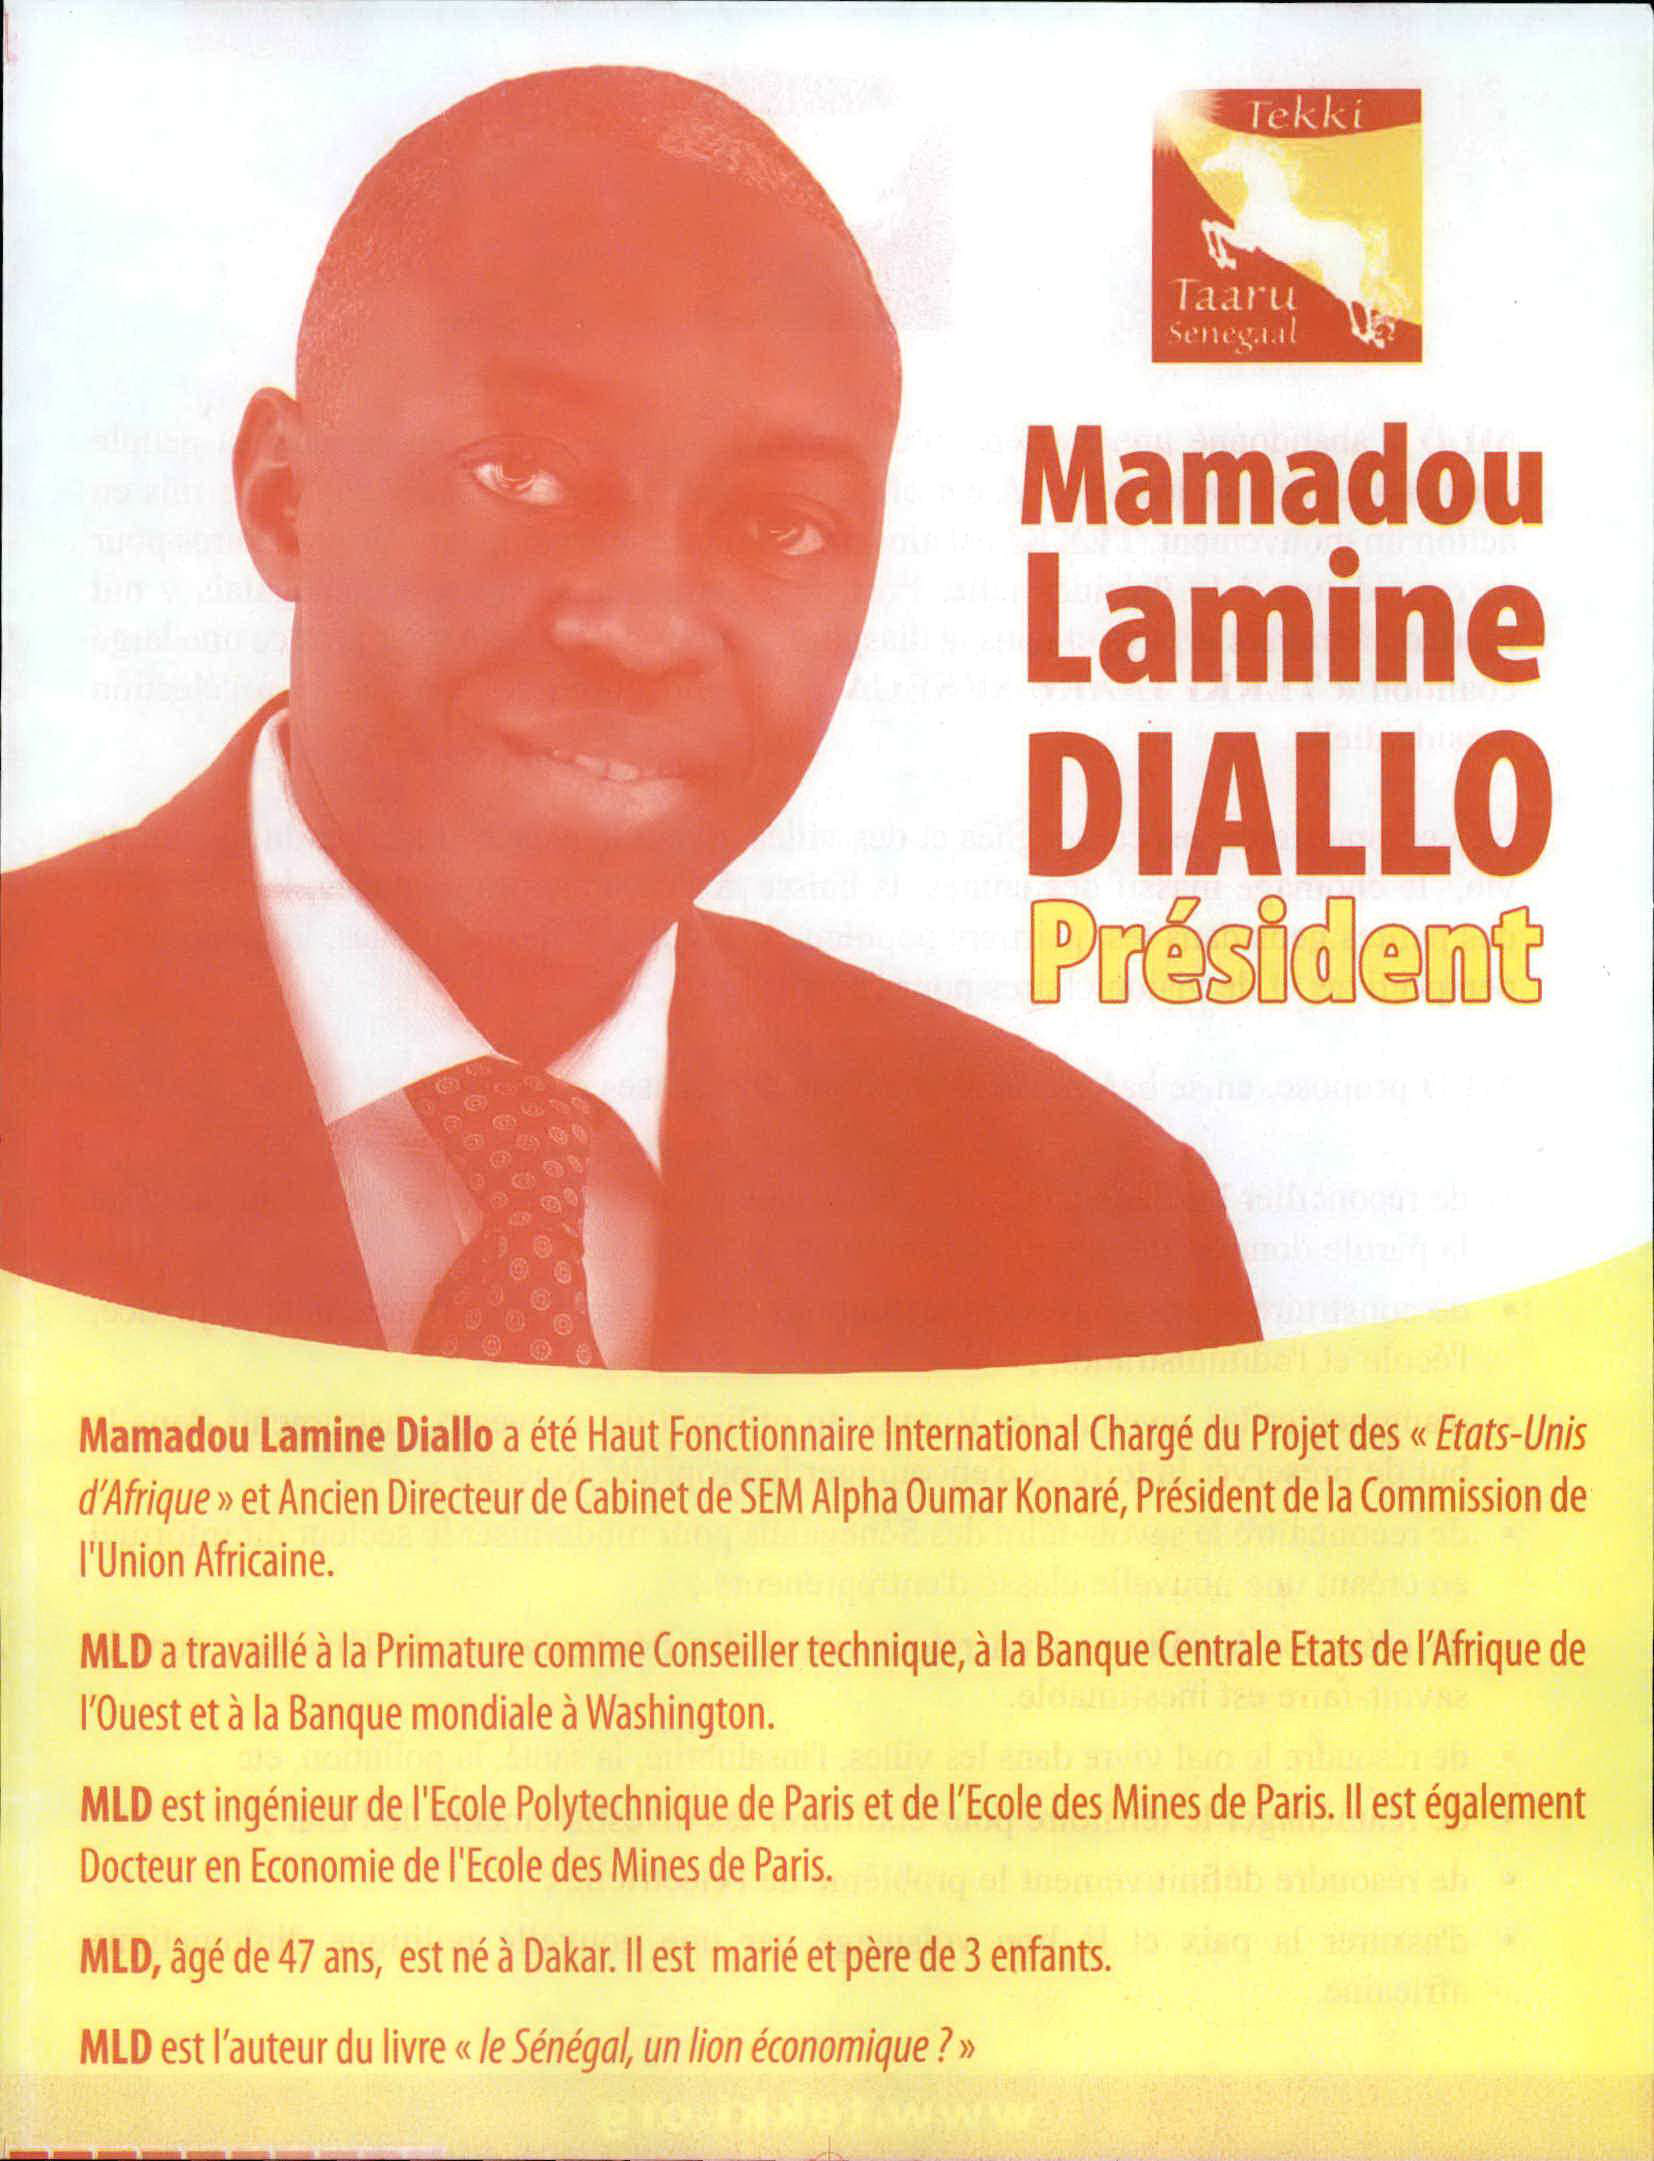 Mamadou Lamin Diallo 2007 Presidential Campaign side 1